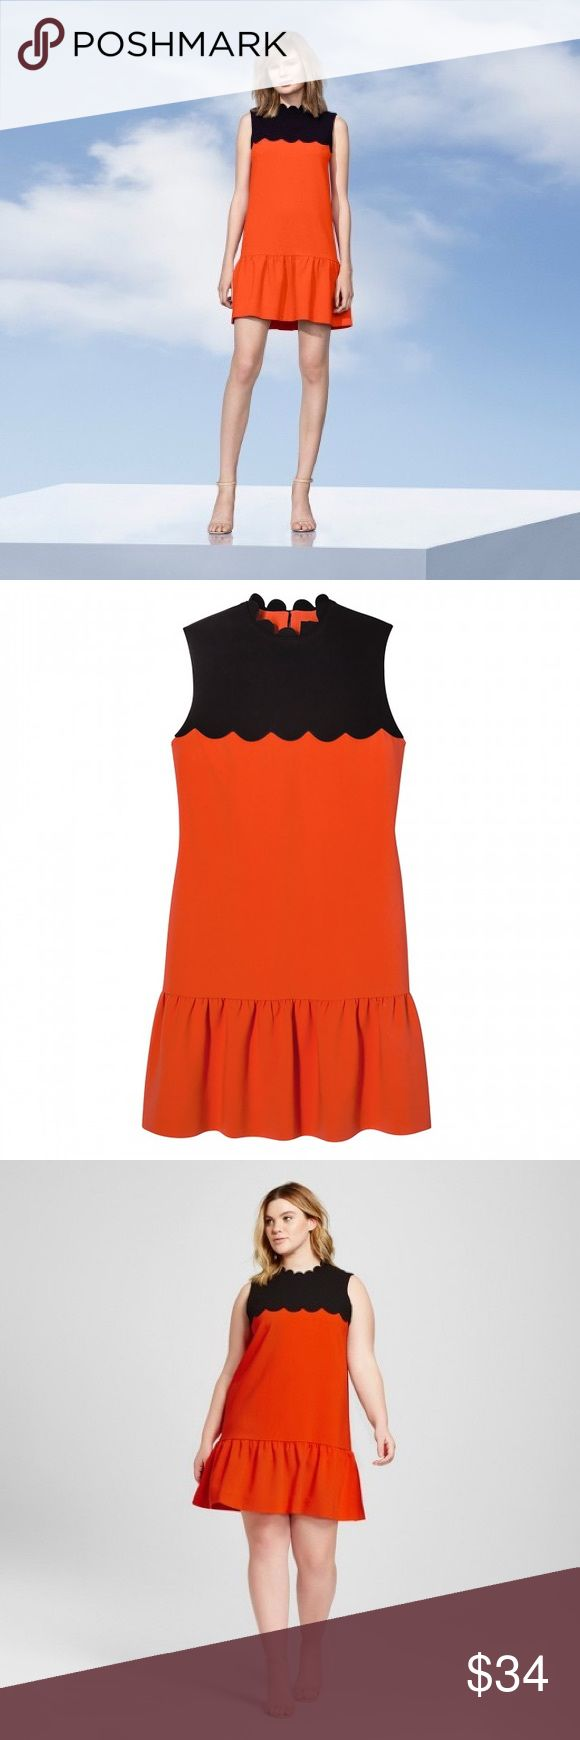 VICTORIA BECKHAM NWT Orange/Black Scallop Dress XL Victoria Beckham for Target orange and black dress with scallop detailing. Perfect dress to transition from day to evening and from work week to weekend brunch. New with tags. Size XL Victoria Beckham for Target Dresses